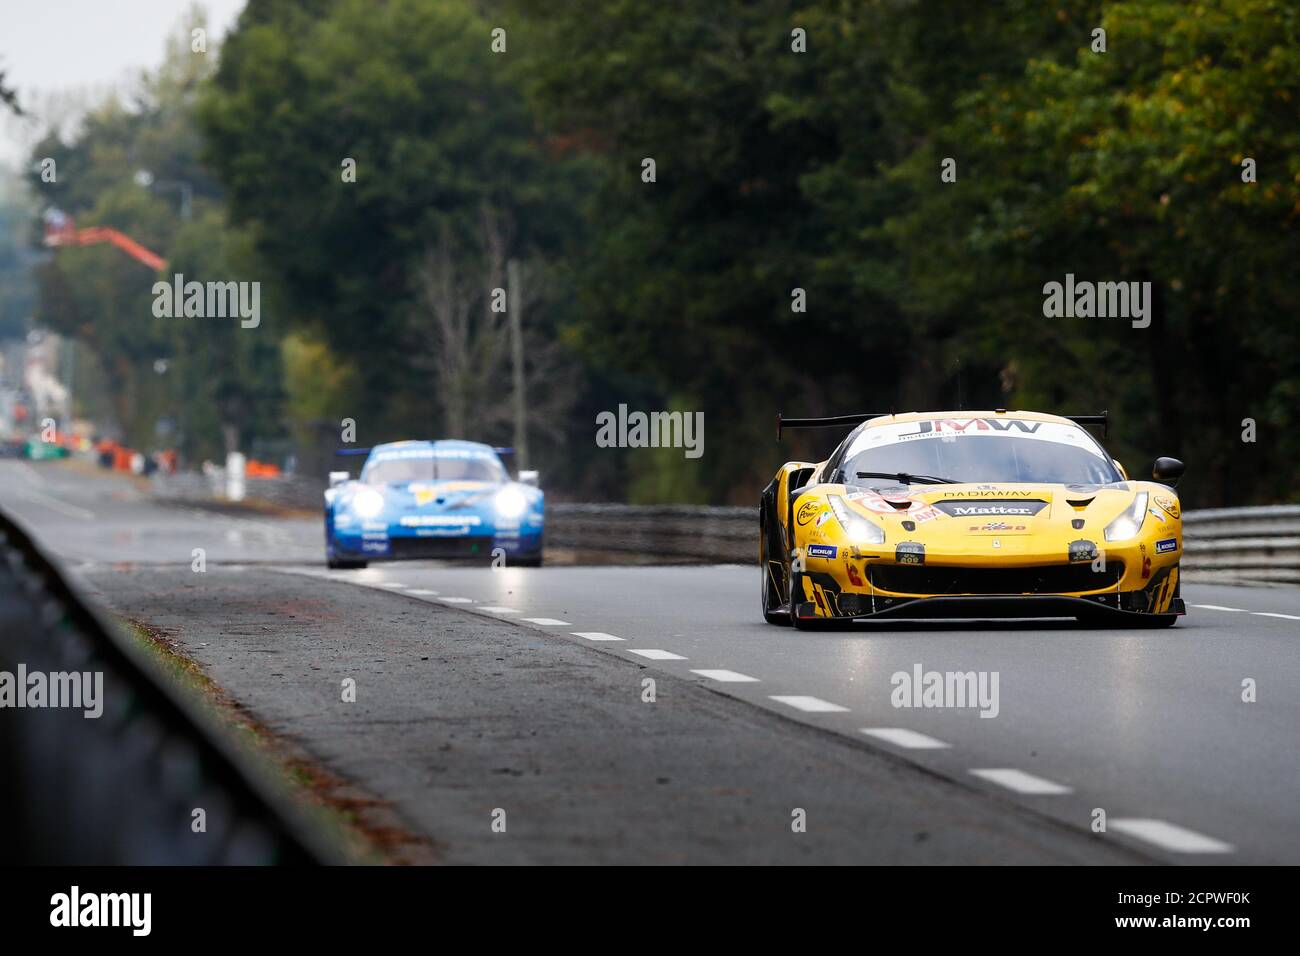 Motorsport Fans Usa High Resolution Stock Photography and Images ...